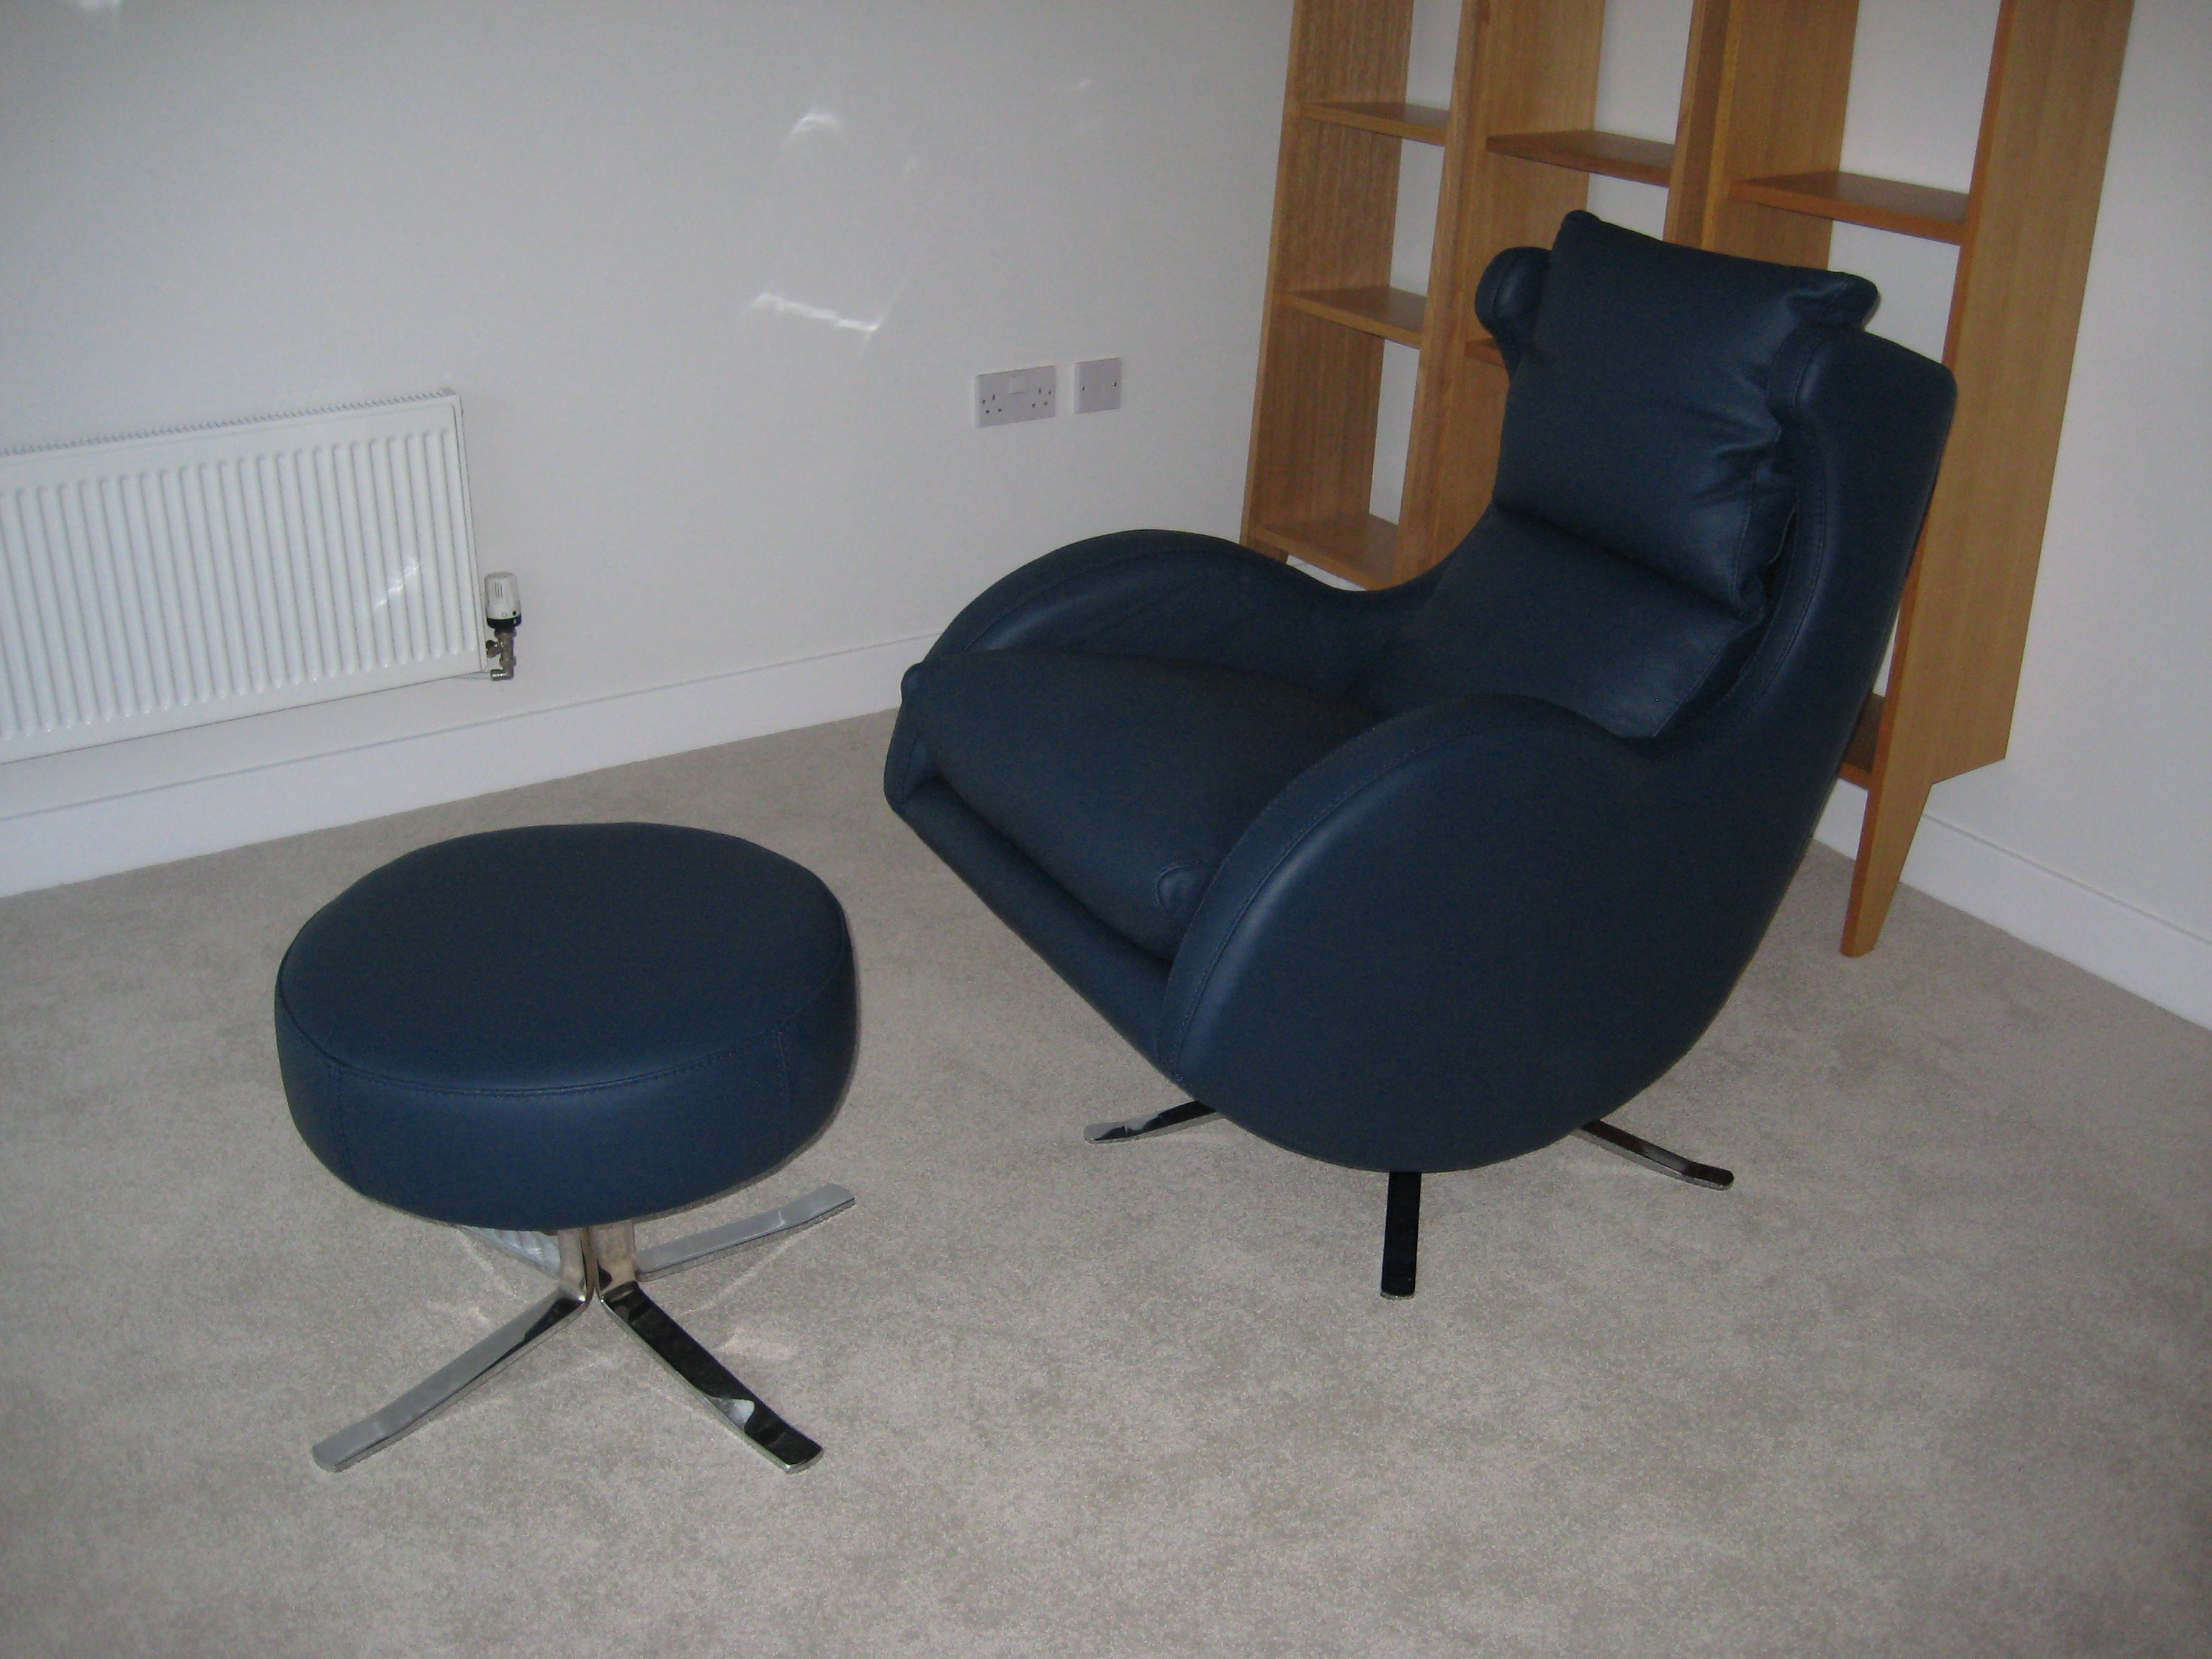 Best Our Very Popular Compact Comfy Swivel Chair With 400 x 300